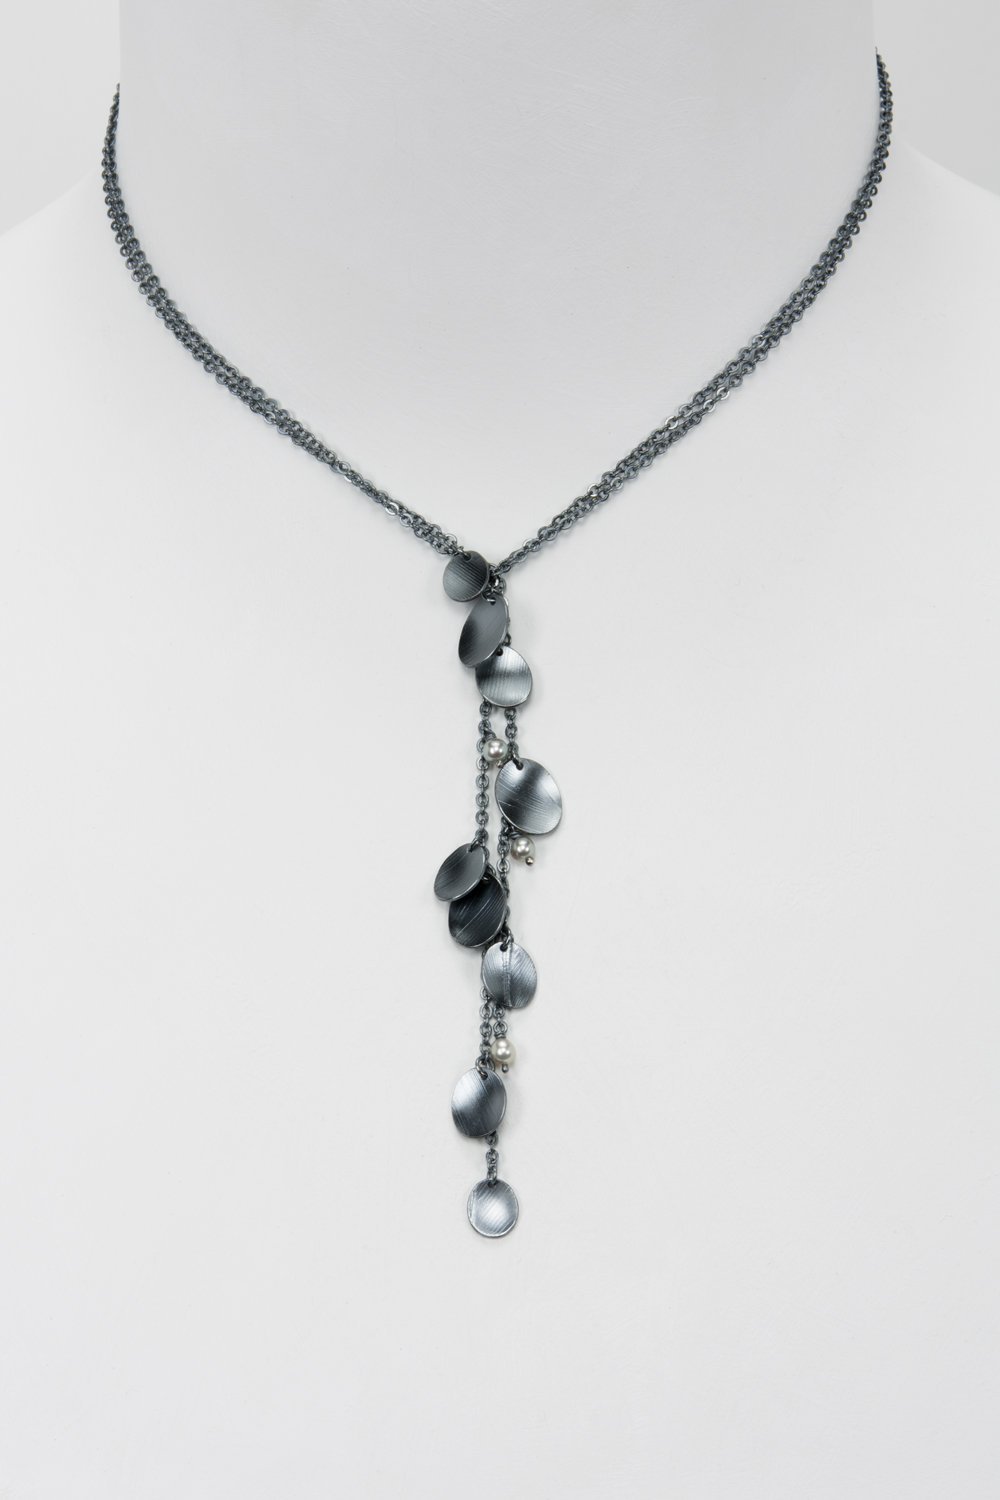 lariat feather necklace - oxidized sterling and pearls - 450.00